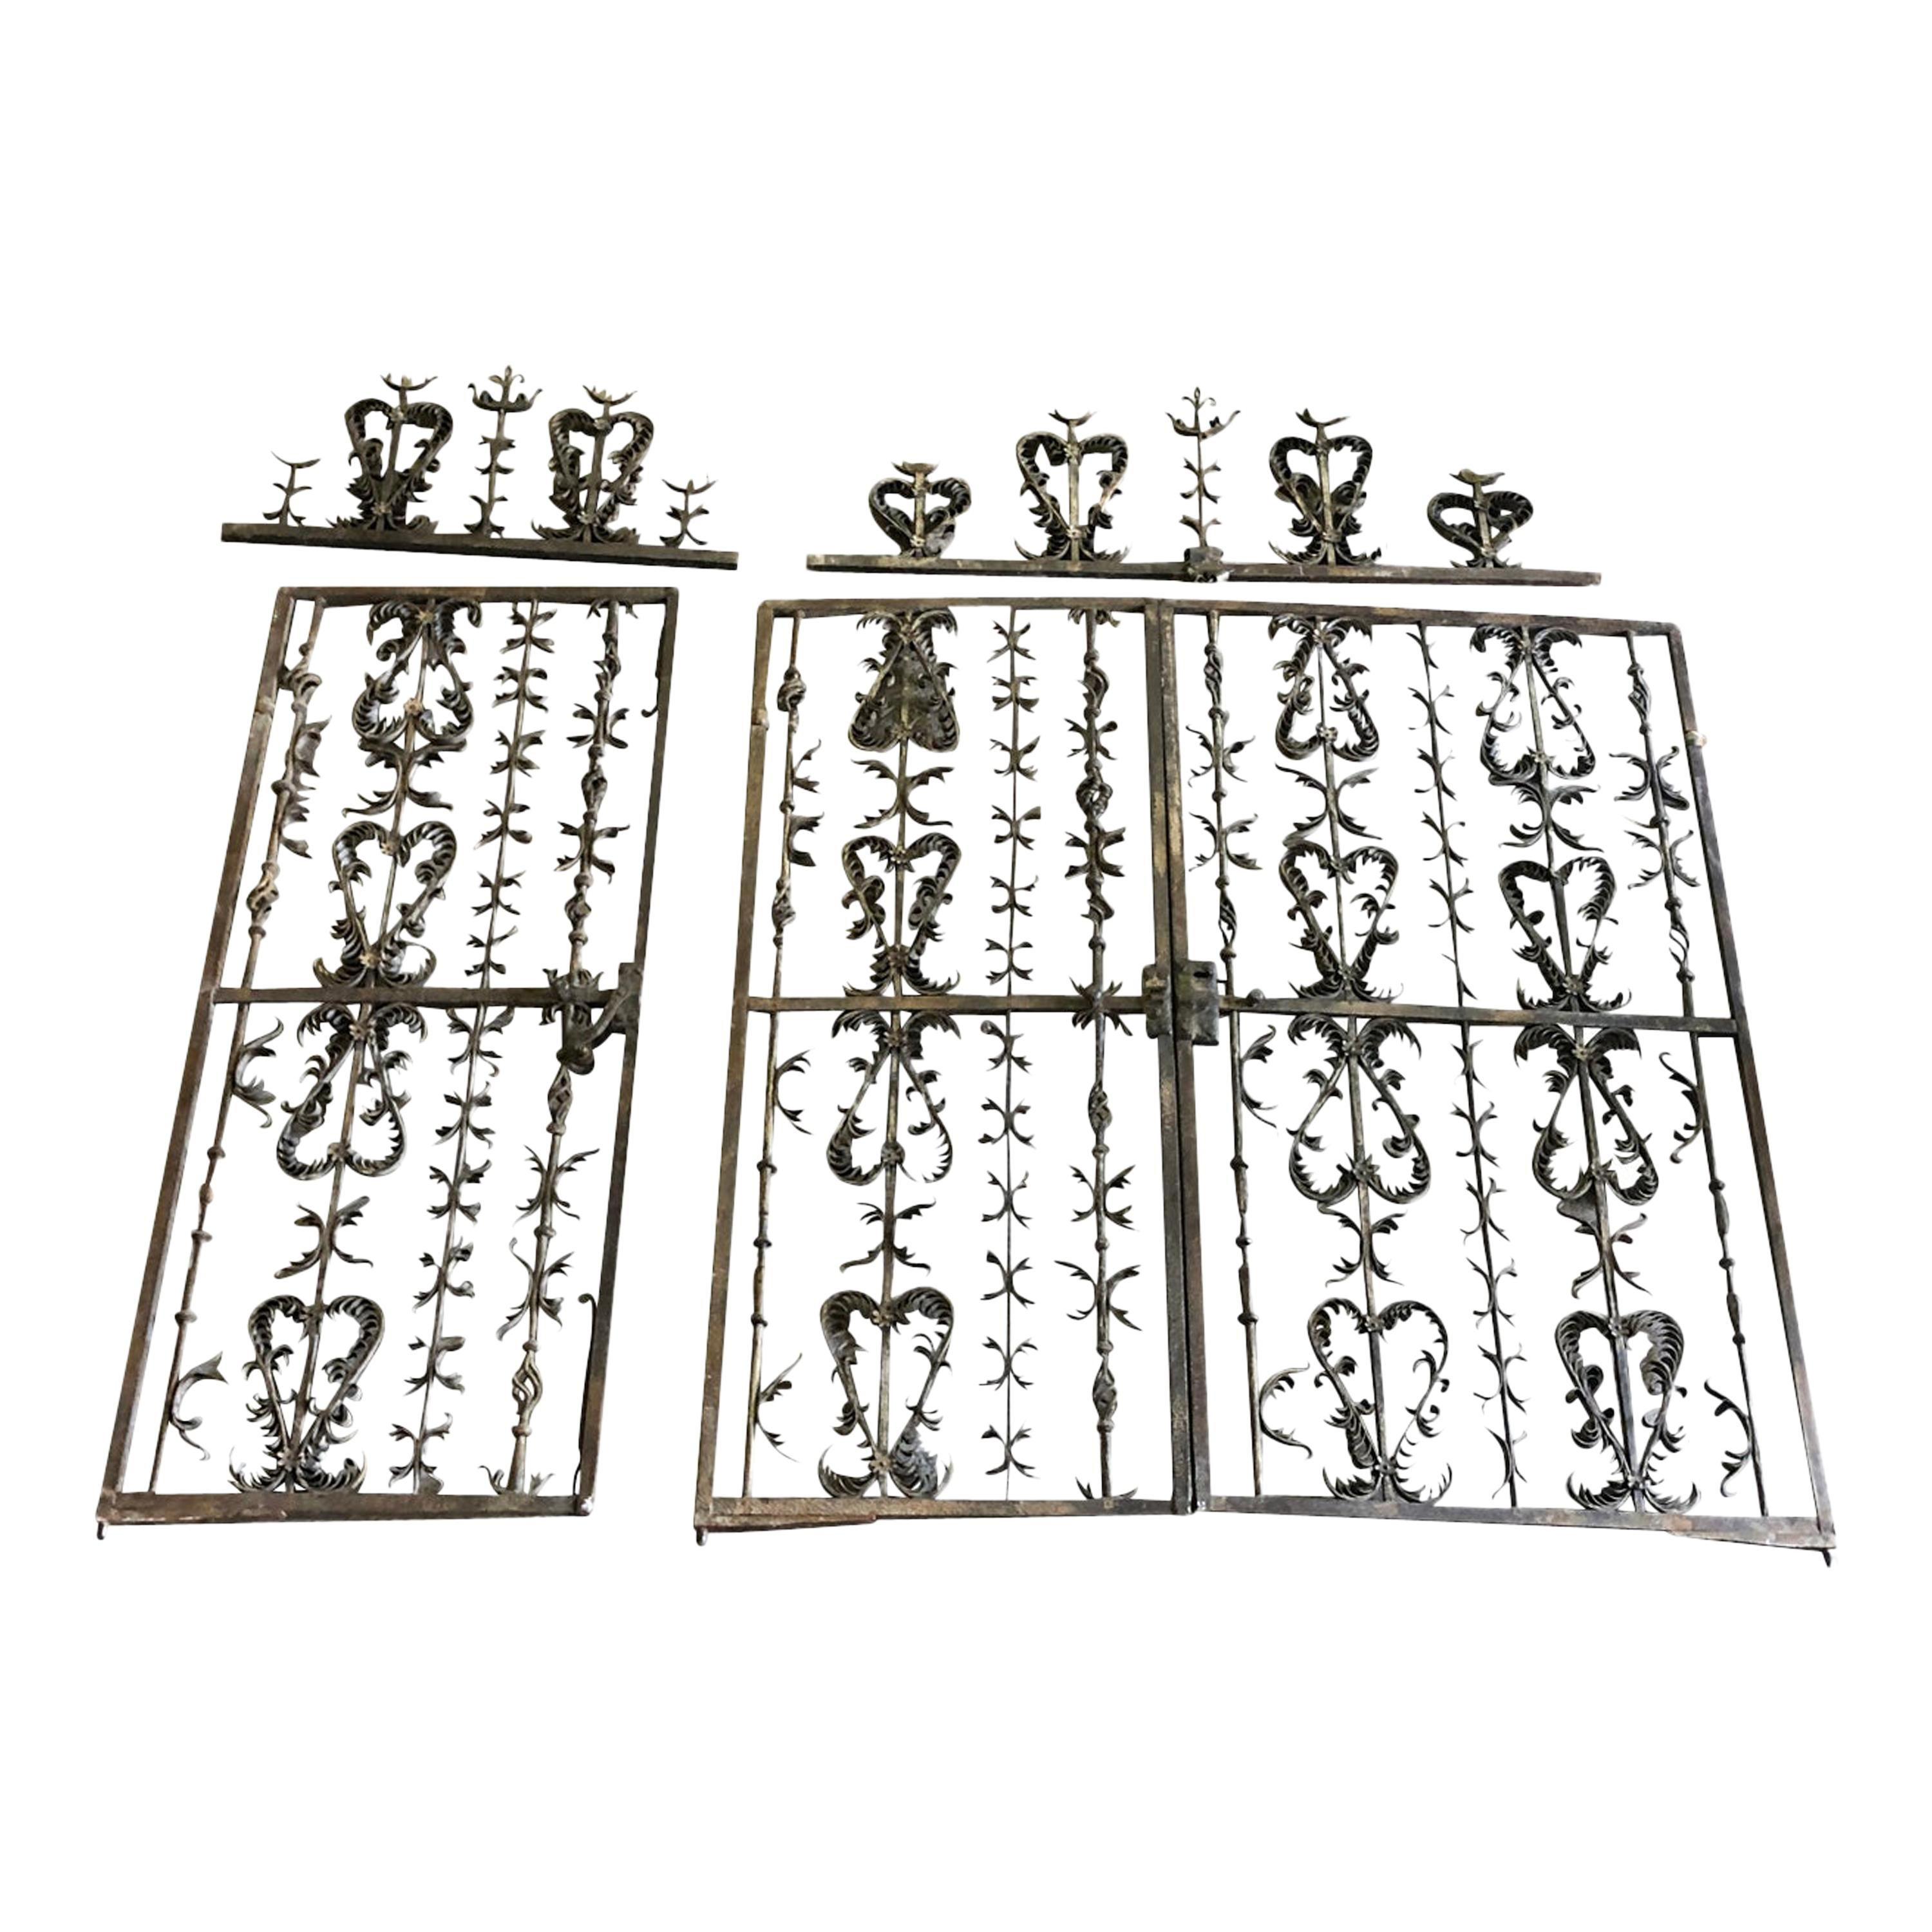 Exceptional Set of Spanish Late 16th-Early 17th Century Iron Gates